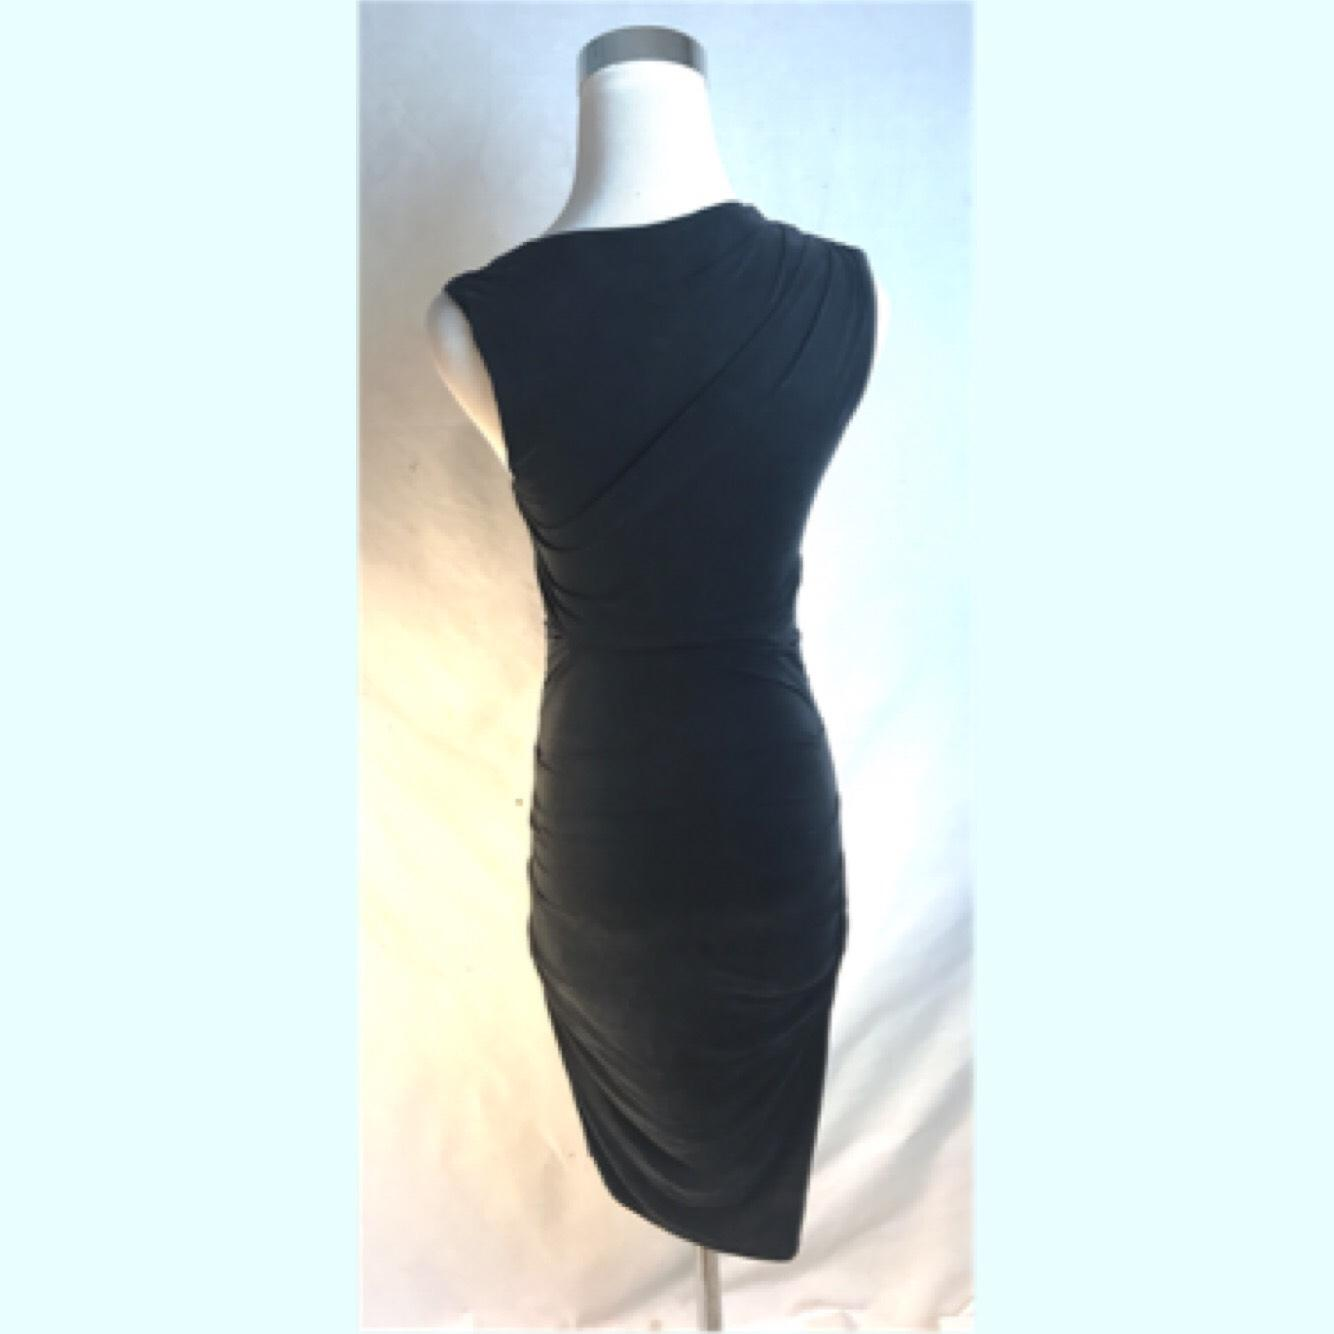 Helmut Lang Silky Bodycon Feat Black P Made From Bemberg Cupro A